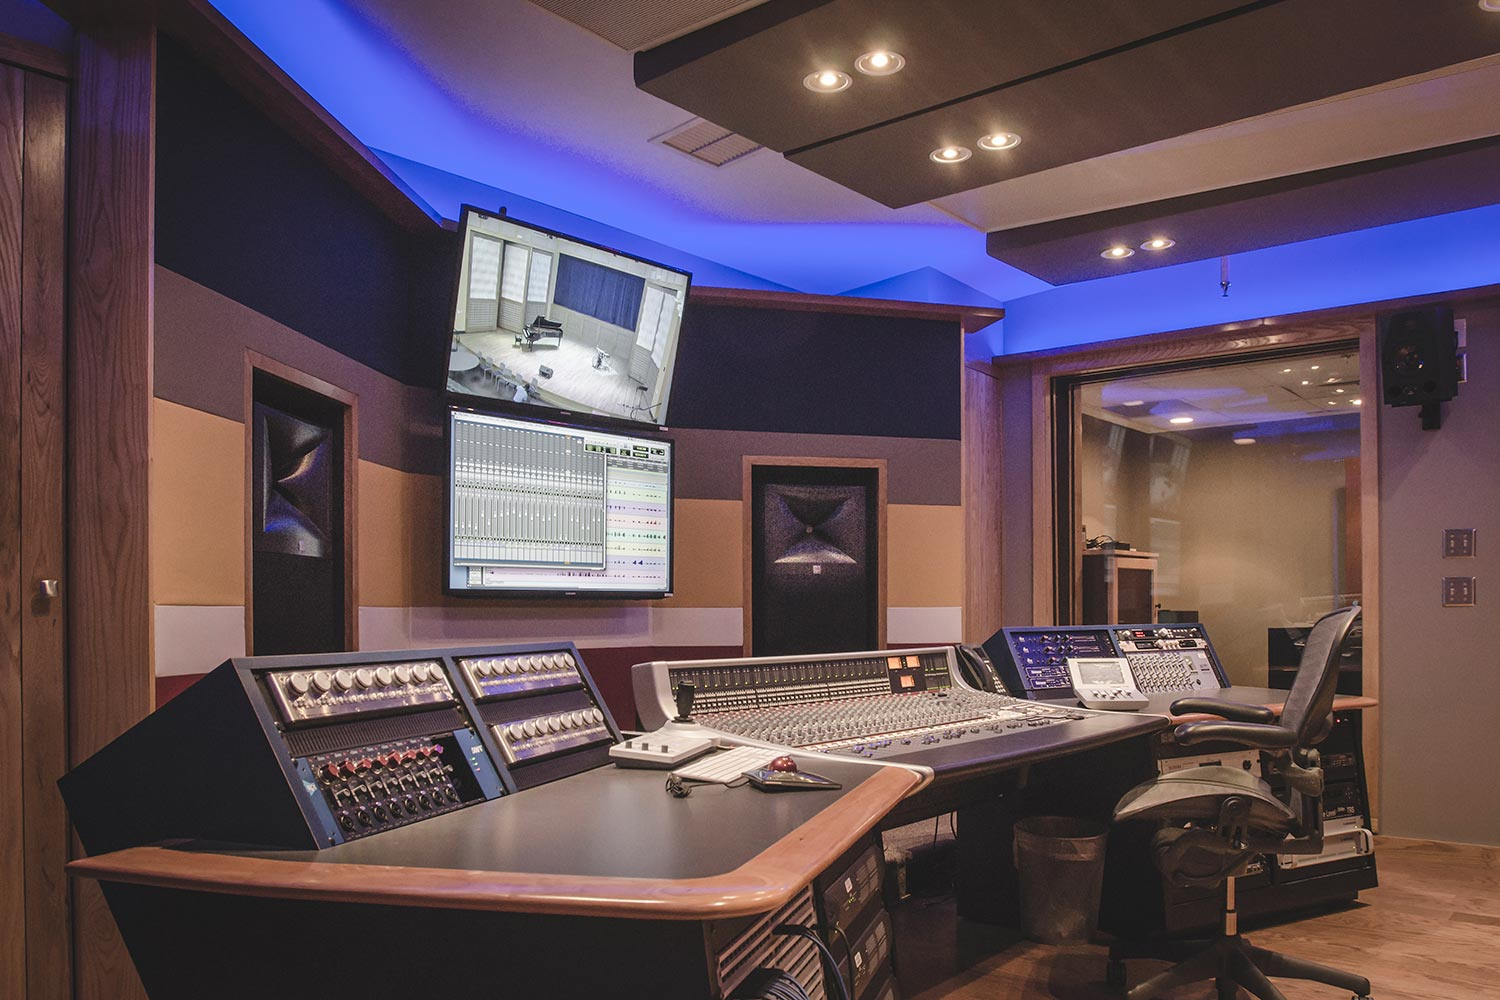 Ellis marsalis center for music opens wsdg studio with jbl professional m2 ma - M2 architecture studio ...